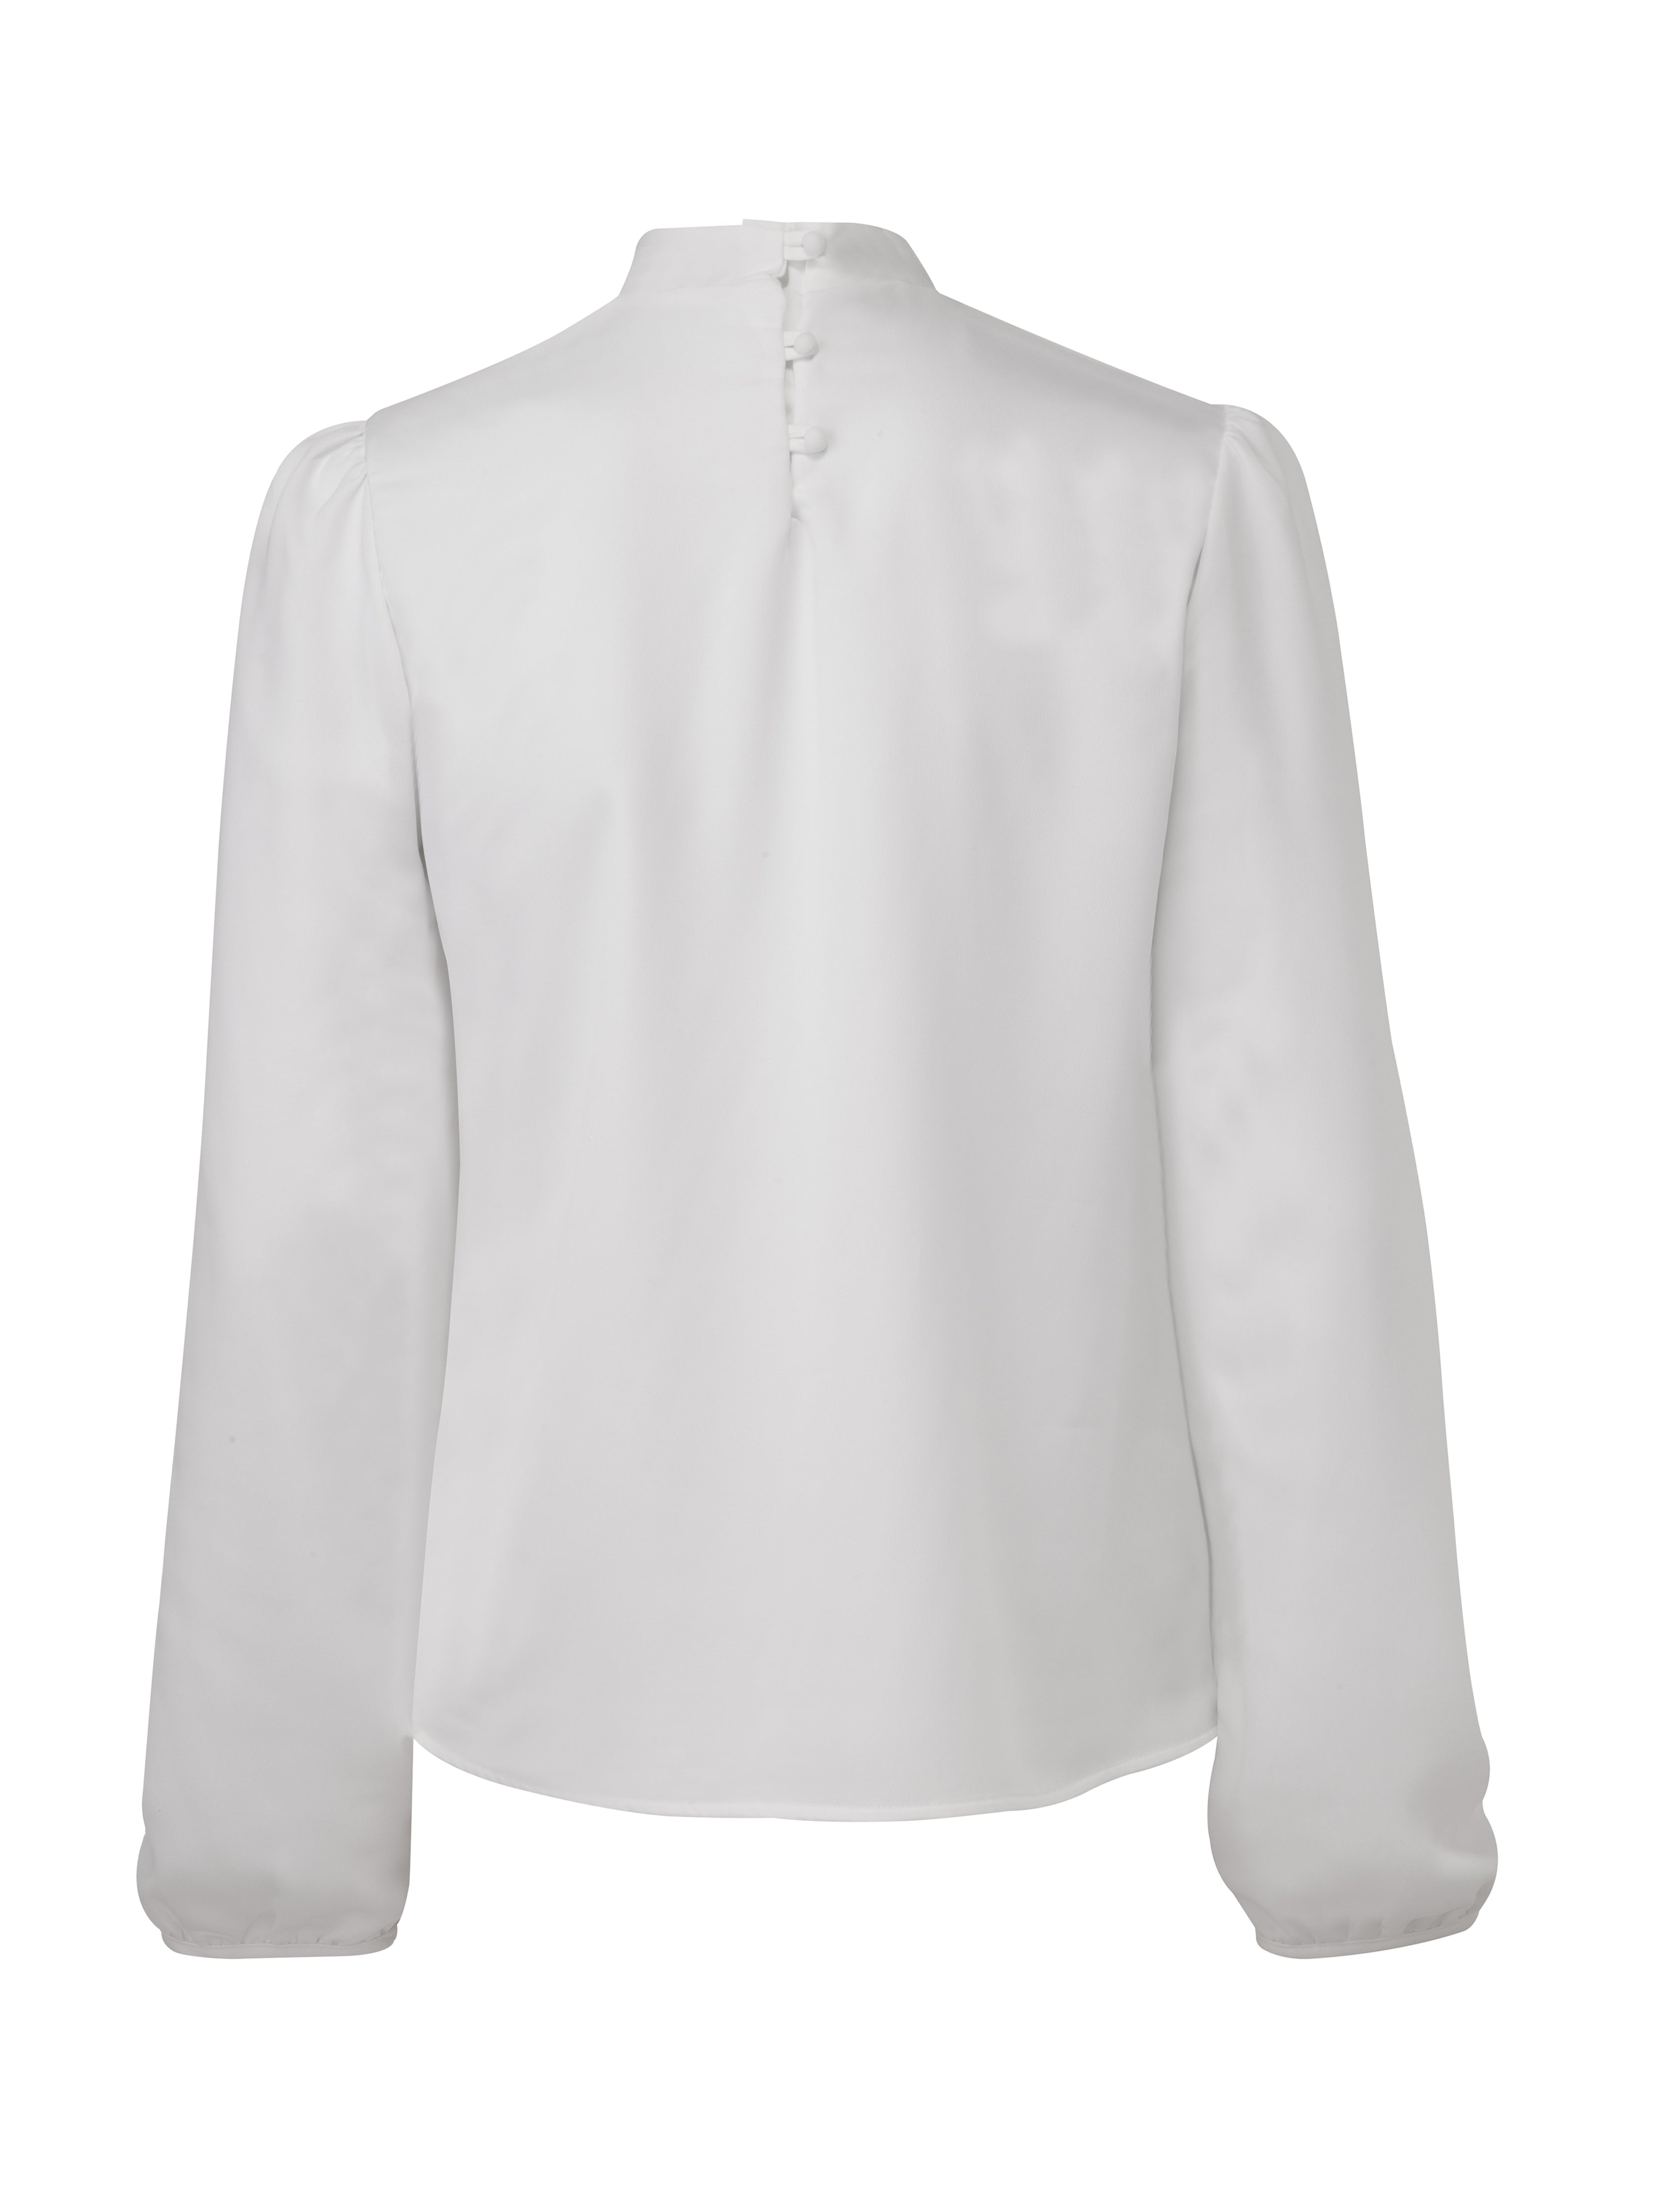 Back view of a long sleeve, white crepe blouse with a neck 3-button closure. From the RÉZO women's collection.